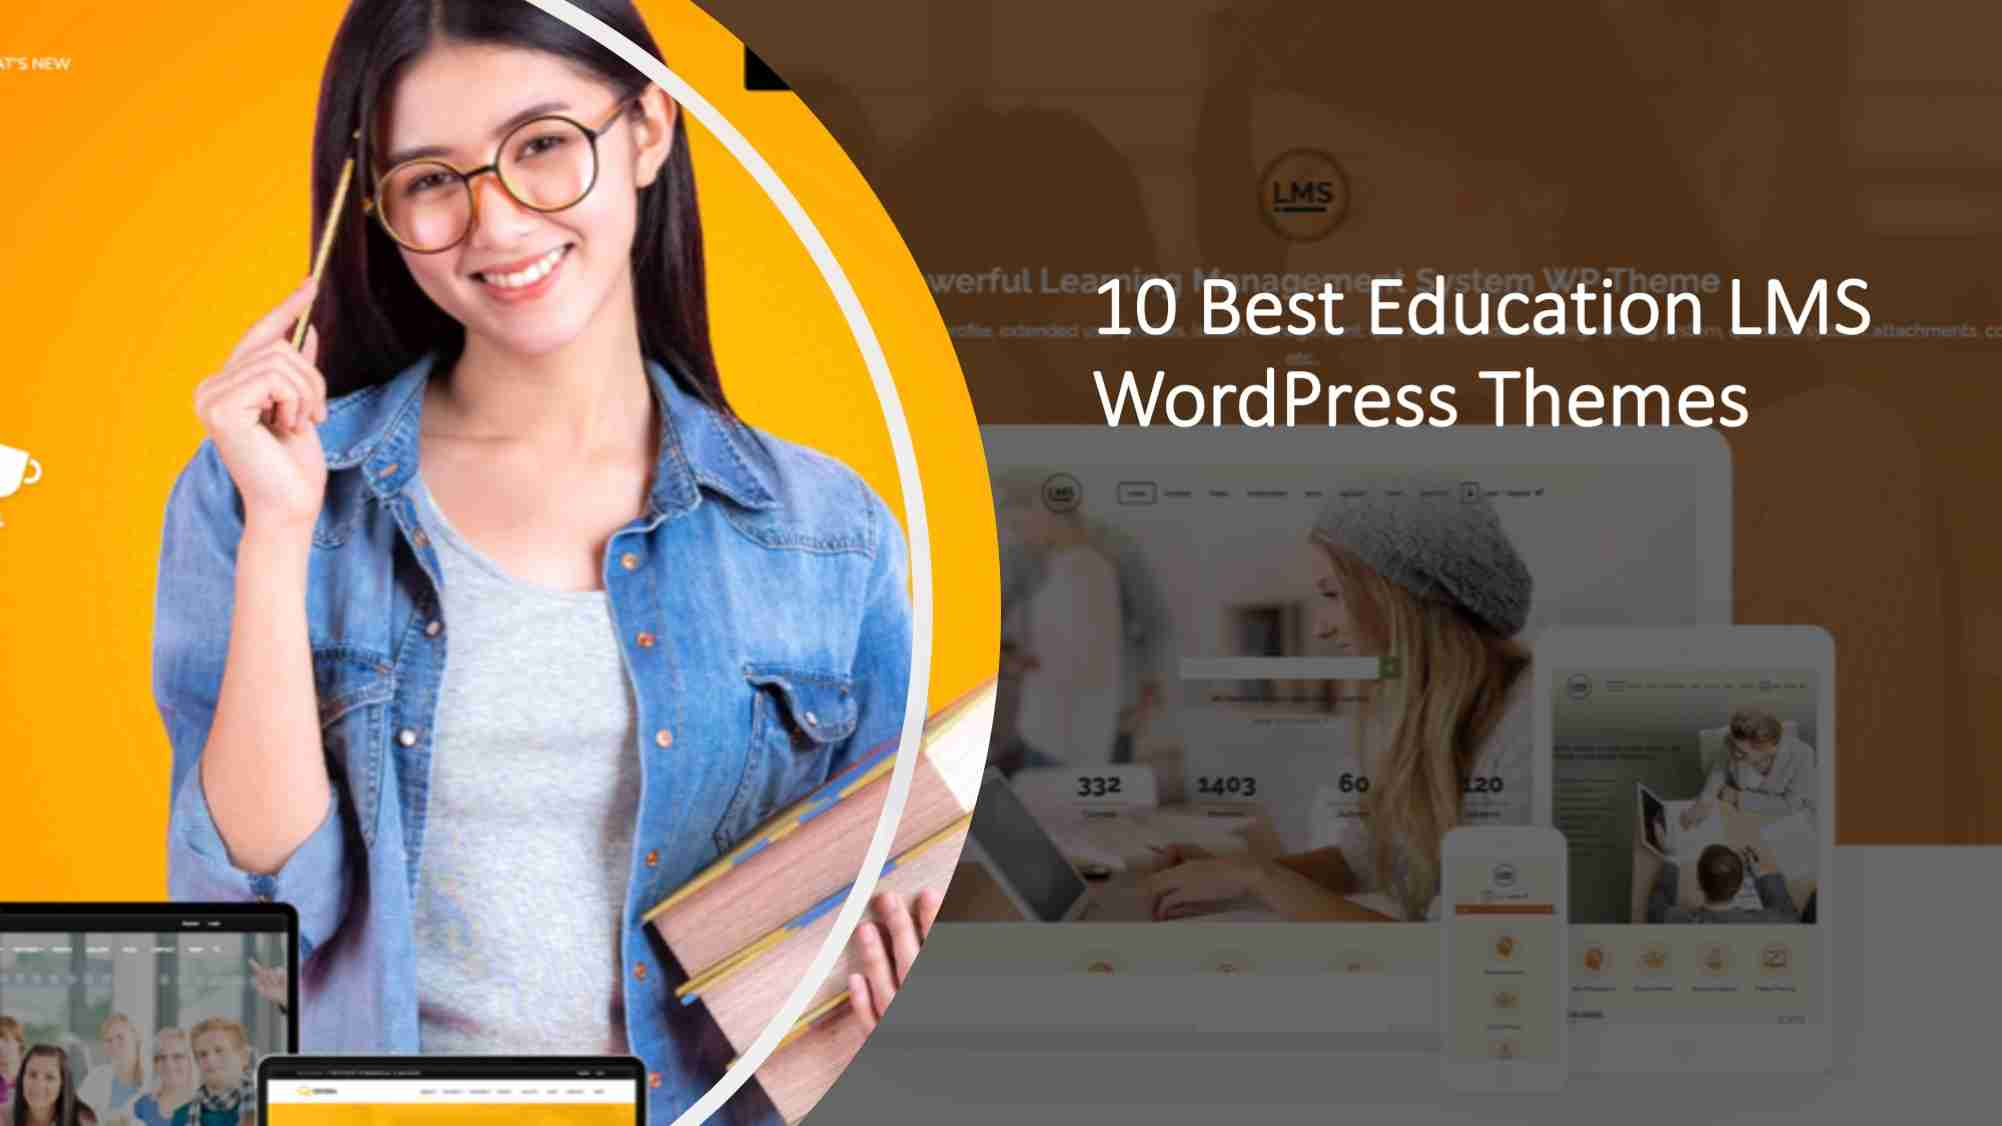 10 Best Education LMS WordPress Themes